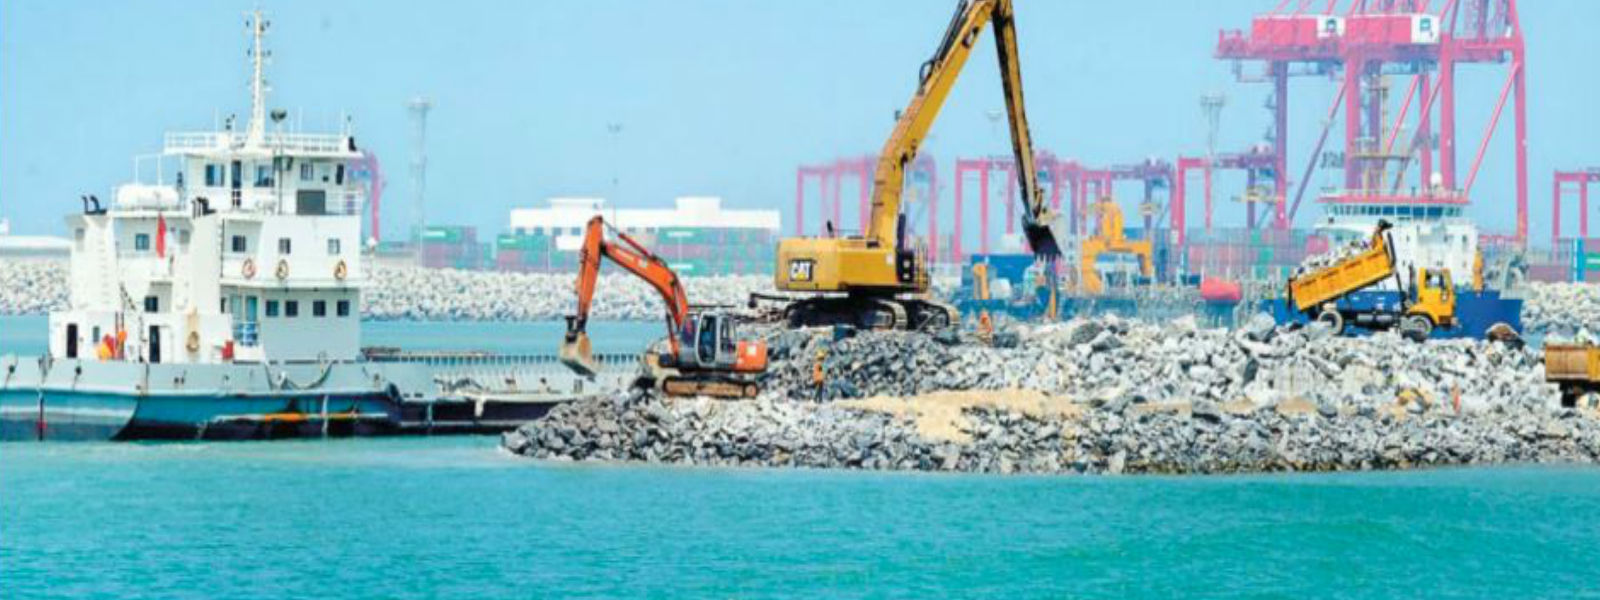 Land reclamation for Colombo Port city ends